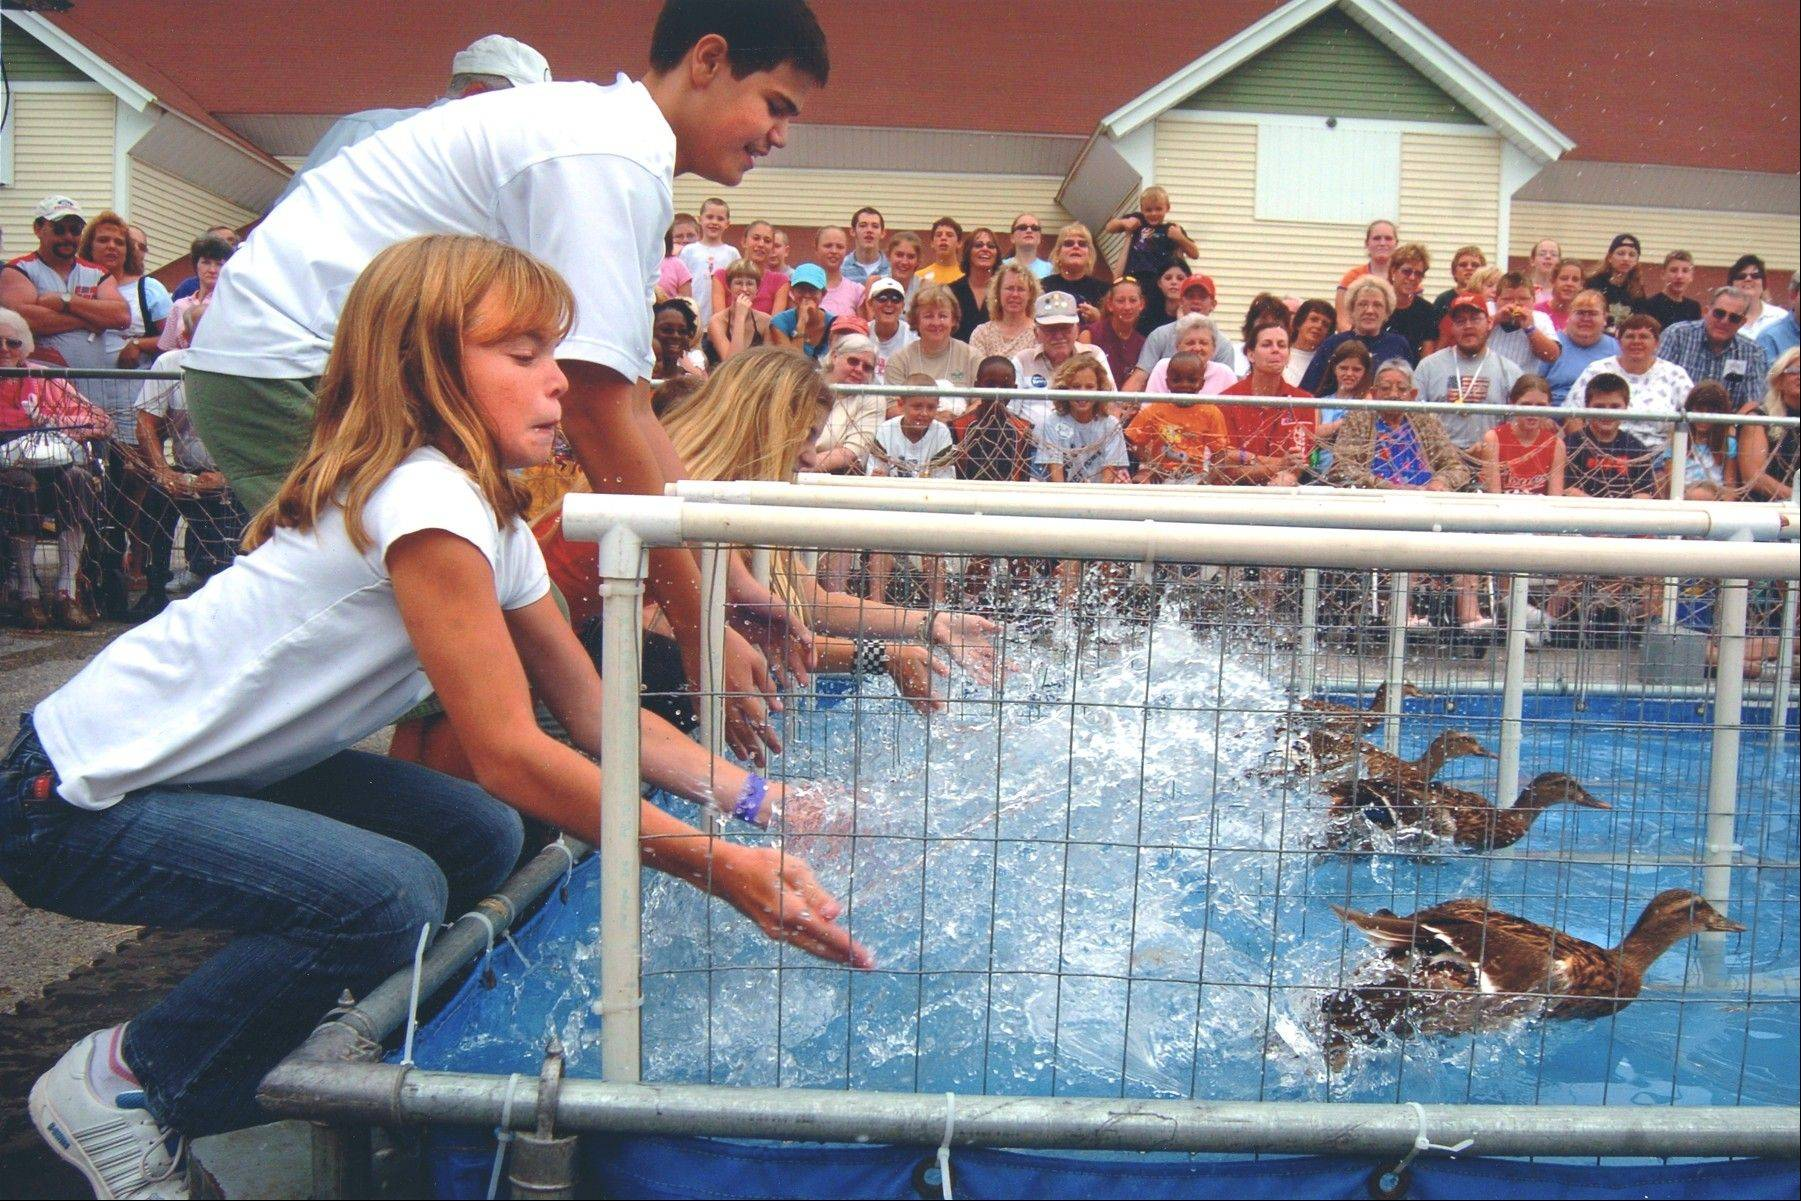 Birds of a feather will splash together this week when the Great American Duck Race returns to the DuPage County Fair.